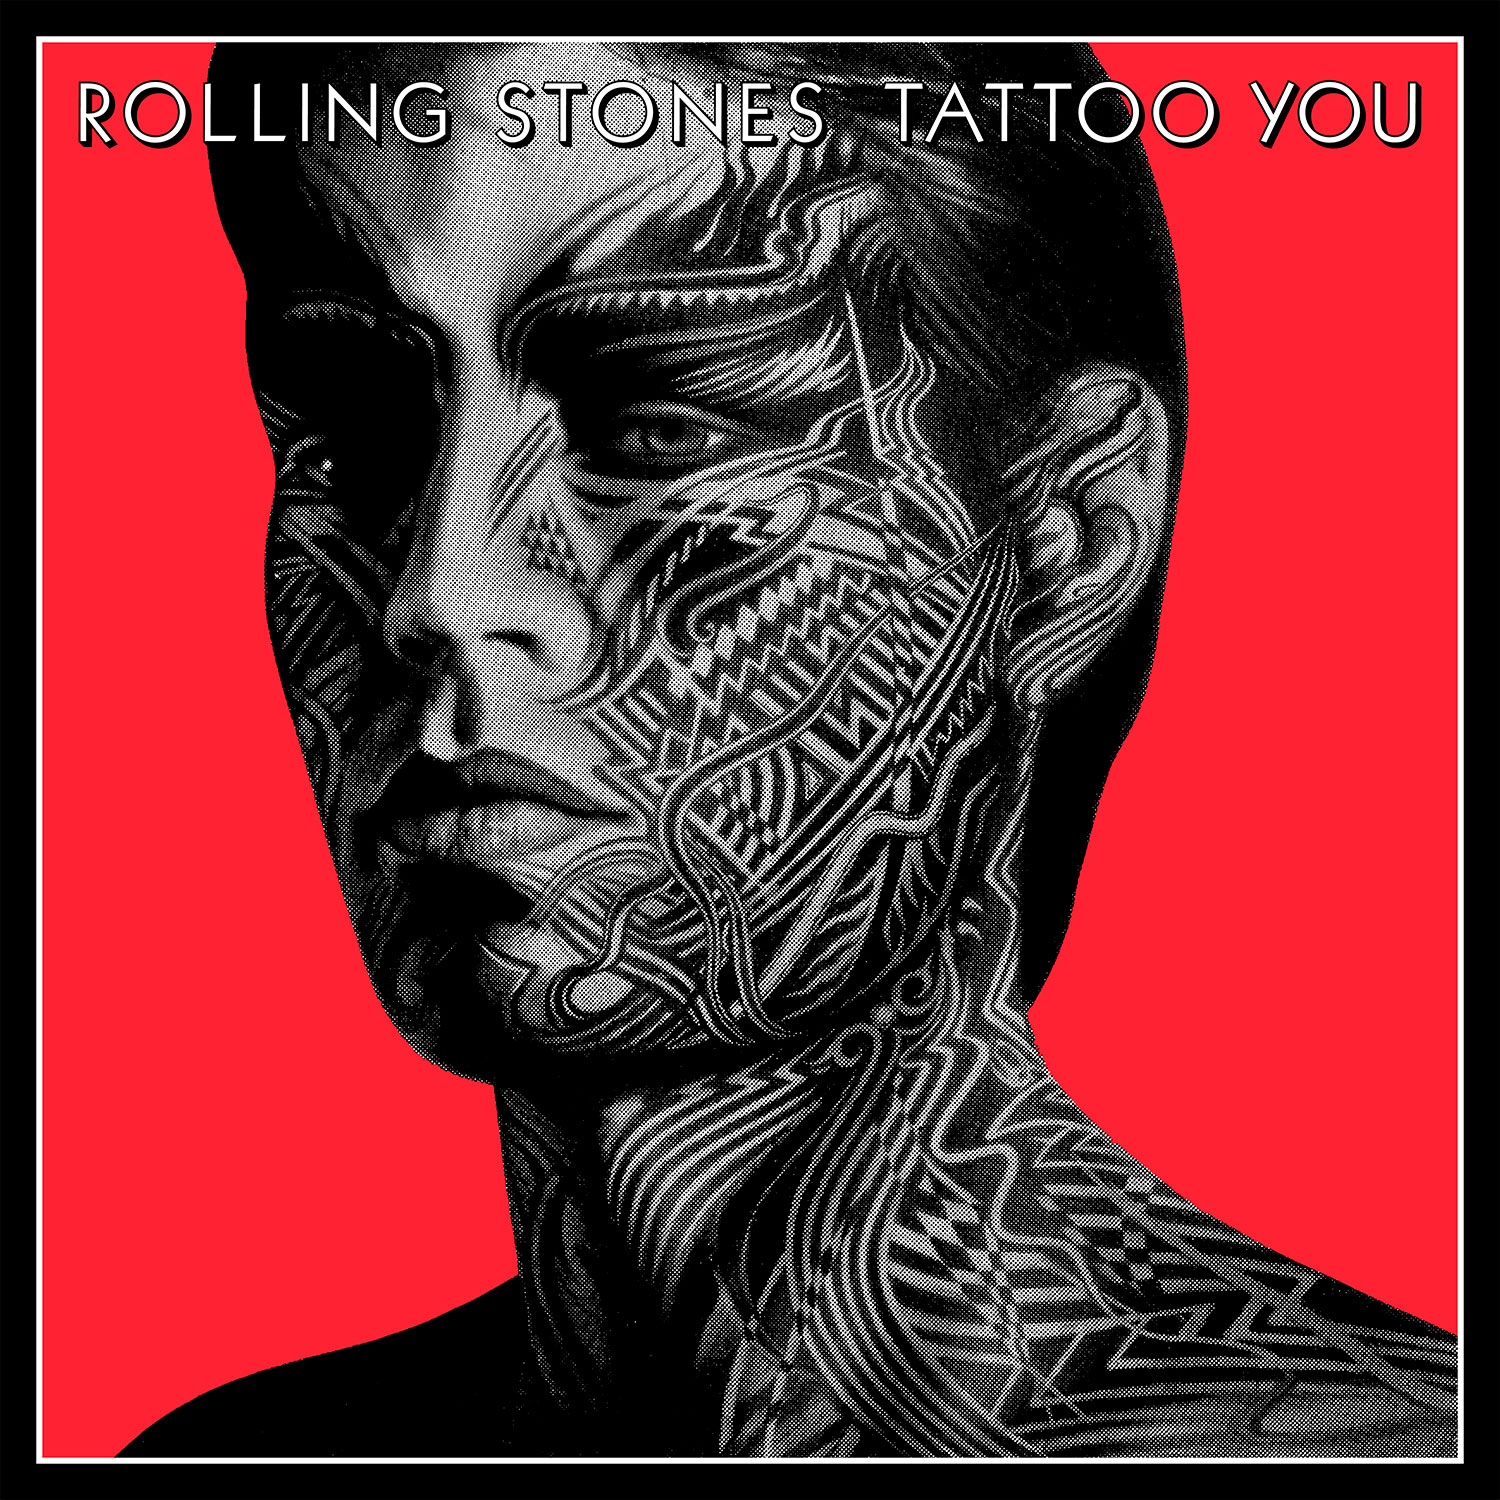 Rolling Stones: Tattoo You (40th Anniversary Edition)